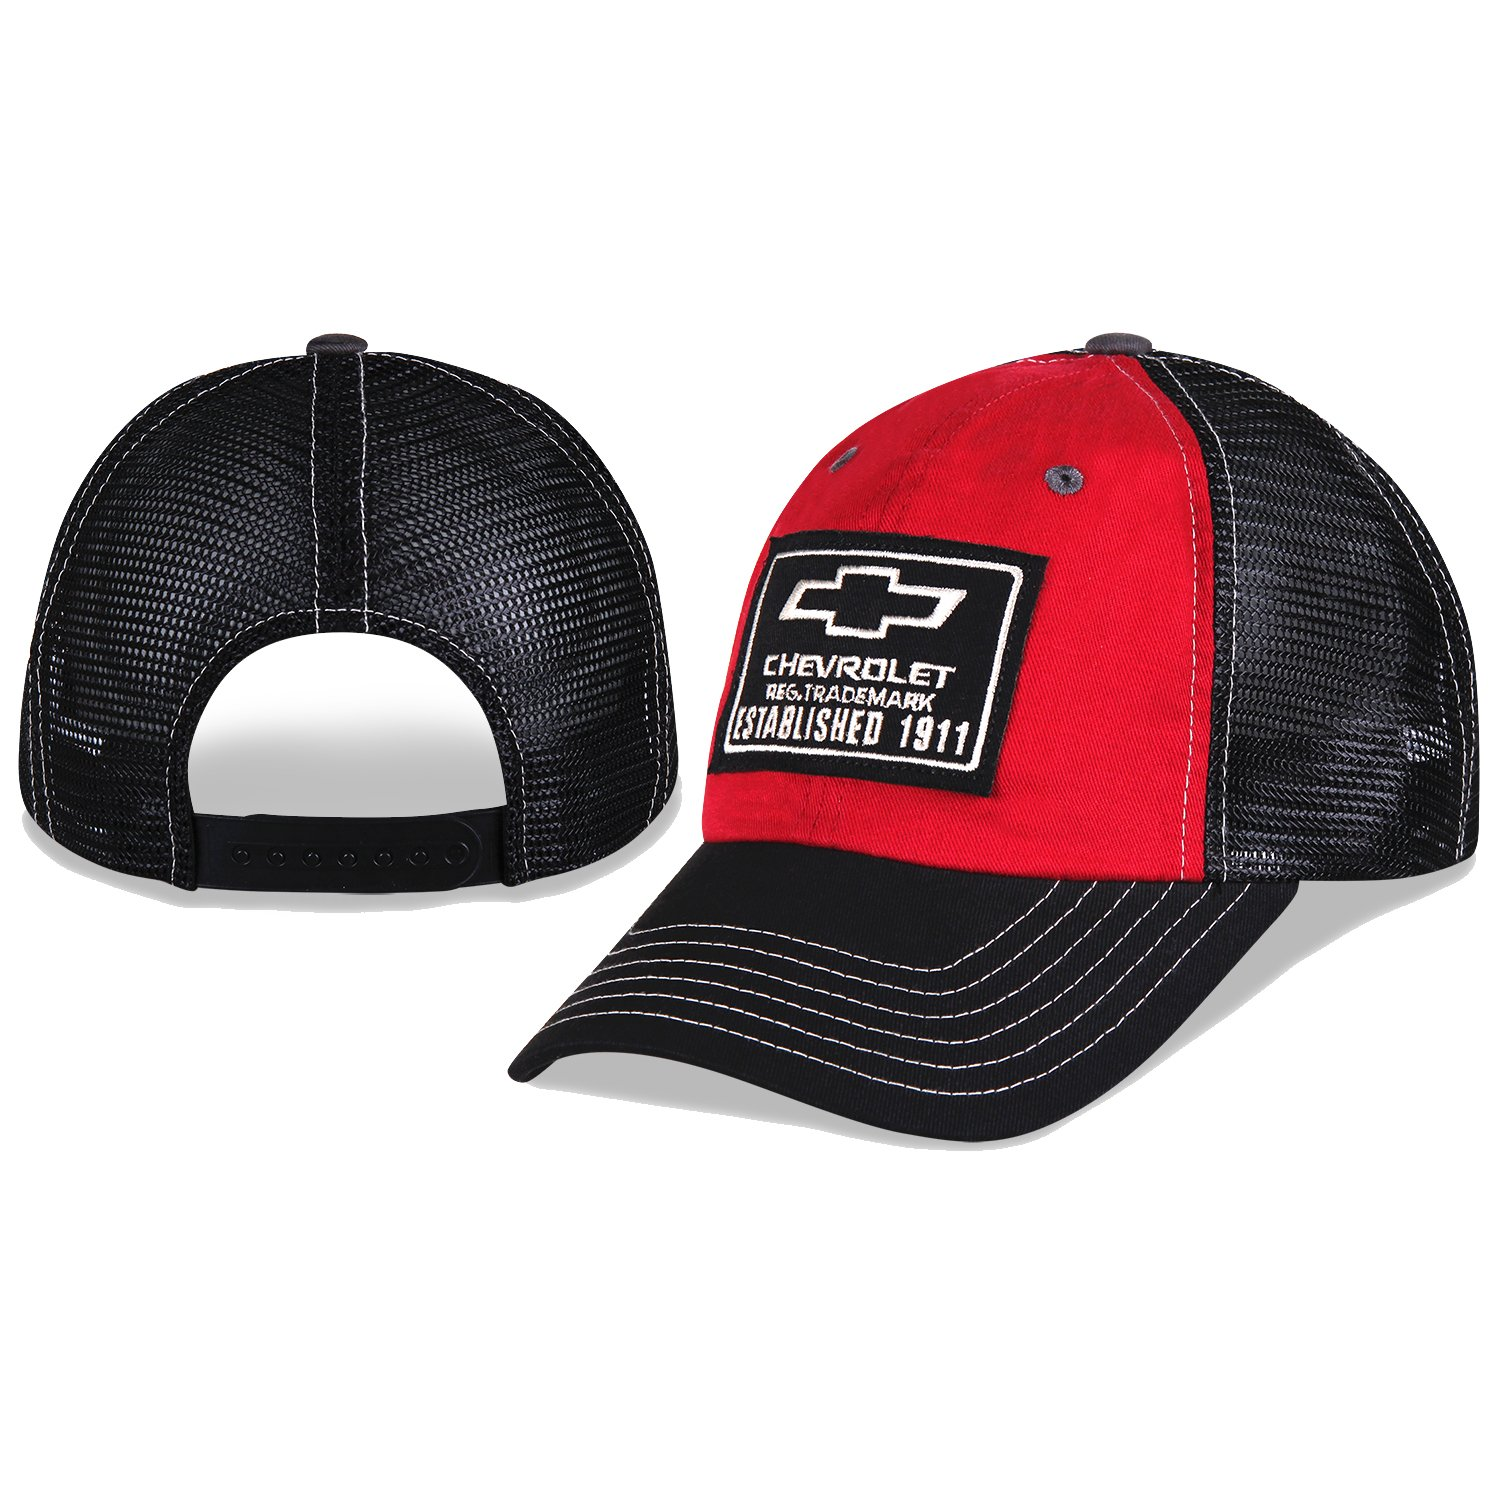 78a1339d387 Chevy Est. 1911 Red and Black Mesh Hat  Amazon.co.uk  Car   Motorbike